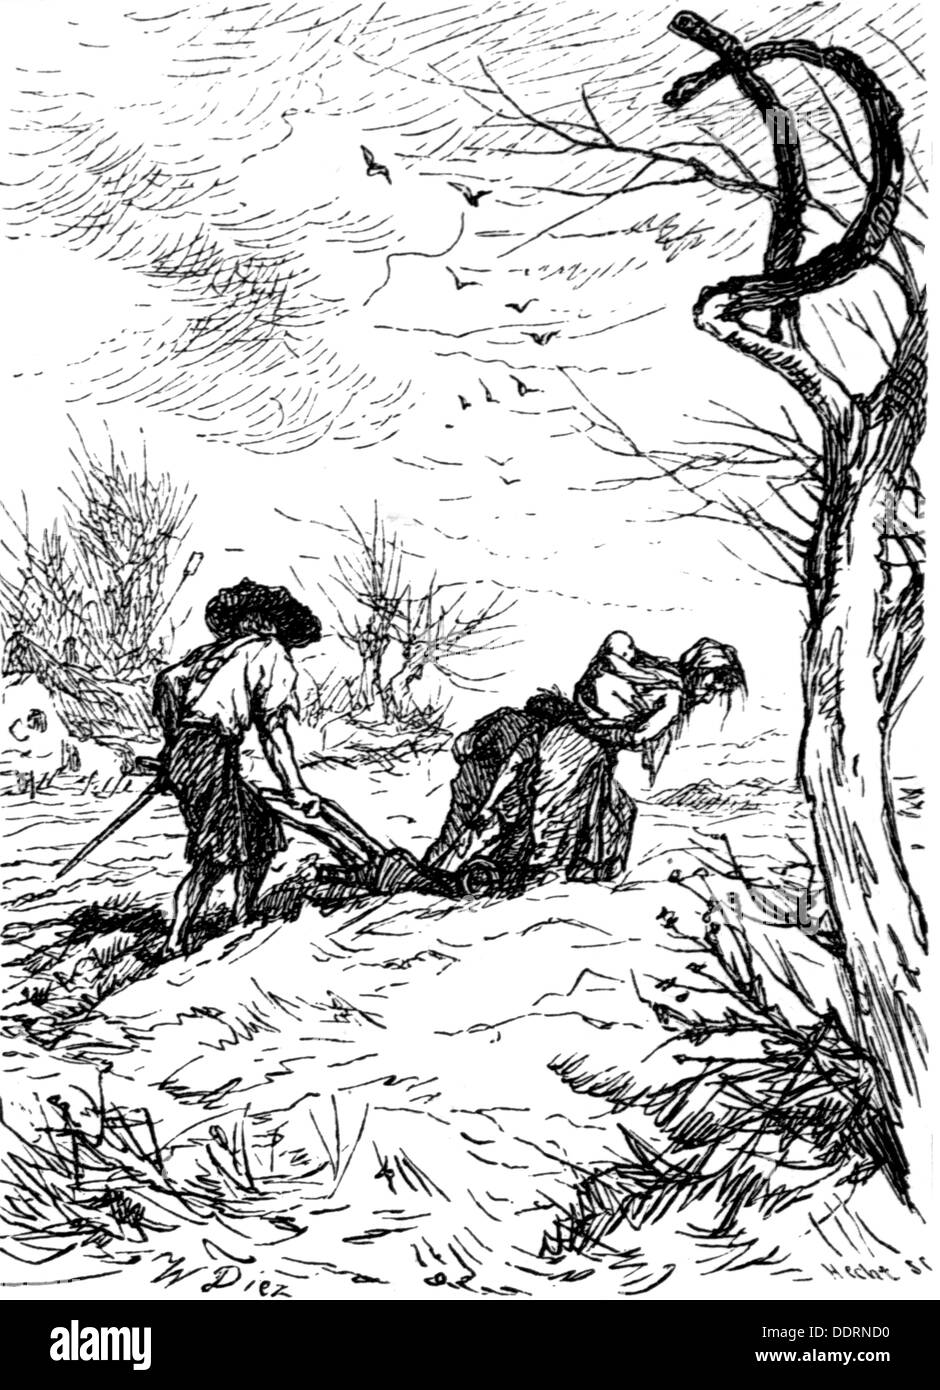 Thirty Years' War 1618 - 1648, hardship and misery, a farmer's wife drawing the plough, drawing by W. Diez, 'History of the Thirty Years' War'  by Friedrich Schiller, 1790, Additional-Rights-Clearences-NA - Stock Image